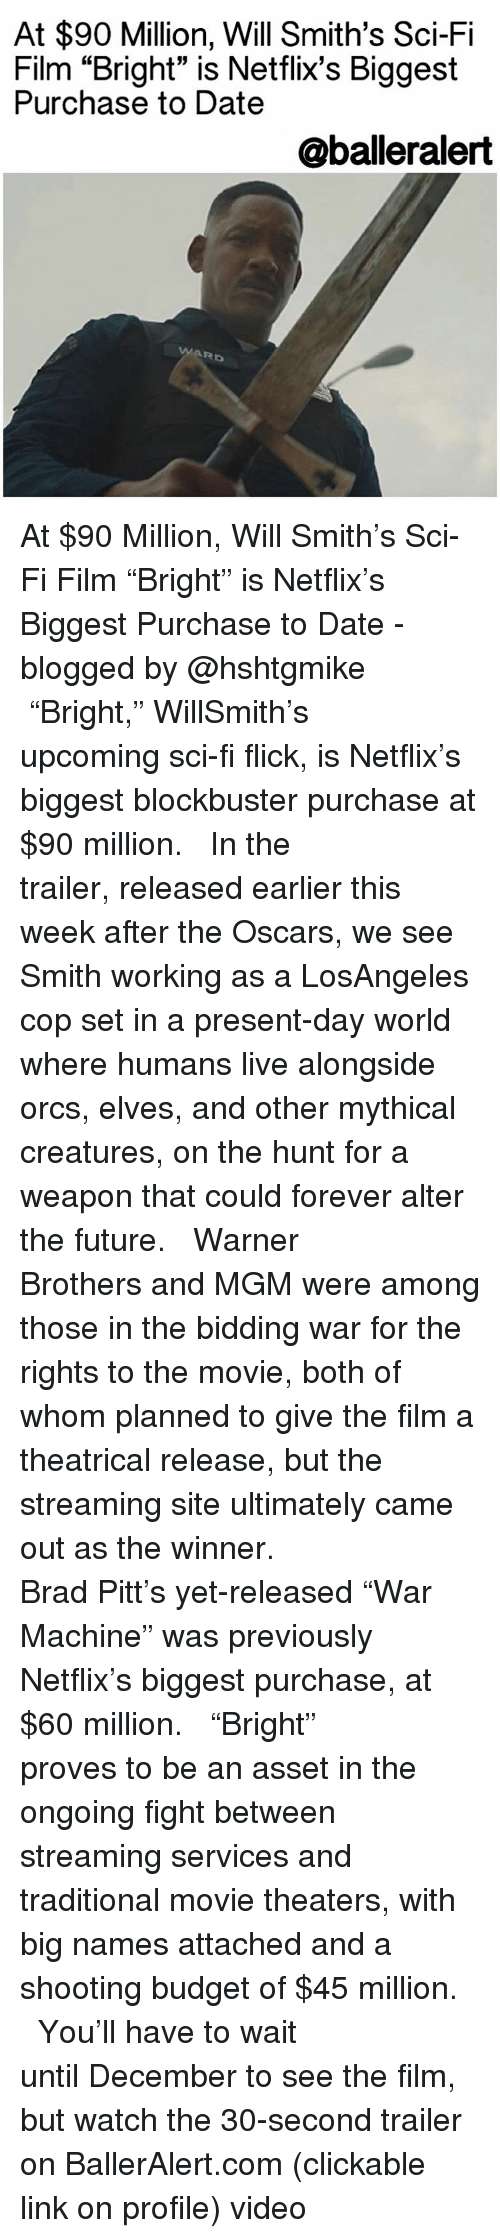 """Brad Pitt: At $90 Million, Will Smith's Sci-Fi  Film """"Bright"""" is Netflix's Biggest  Purchase to Date  @balleralert  Rb At $90 Million, Will Smith's Sci-Fi Film """"Bright"""" is Netflix's Biggest Purchase to Date -blogged by @hshtgmike ⠀⠀⠀⠀⠀⠀⠀⠀⠀ ⠀⠀⠀⠀⠀⠀⠀⠀⠀ """"Bright,"""" WillSmith's upcoming sci-fi flick, is Netflix's biggest blockbuster purchase at $90 million. ⠀⠀⠀⠀⠀⠀⠀⠀⠀ ⠀⠀⠀⠀⠀⠀⠀⠀⠀ In the trailer, released earlier this week after the Oscars, we see Smith working as a LosAngeles cop set in a present-day world where humans live alongside orcs, elves, and other mythical creatures, on the hunt for a weapon that could forever alter the future. ⠀⠀⠀⠀⠀⠀⠀⠀⠀ ⠀⠀⠀⠀⠀⠀⠀⠀⠀ Warner Brothers and MGM were among those in the bidding war for the rights to the movie, both of whom planned to give the film a theatrical release, but the streaming site ultimately came out as the winner. ⠀⠀⠀⠀⠀⠀⠀⠀⠀ ⠀⠀⠀⠀⠀⠀⠀⠀⠀ Brad Pitt's yet-released """"War Machine"""" was previously Netflix's biggest purchase, at $60 million. ⠀⠀⠀⠀⠀⠀⠀⠀⠀ ⠀⠀⠀⠀⠀⠀⠀⠀⠀ """"Bright"""" proves to be an asset in the ongoing fight between streaming services and traditional movie theaters, with big names attached and a shooting budget of $45 million. ⠀⠀⠀⠀⠀⠀⠀⠀⠀ ⠀⠀⠀⠀⠀⠀⠀⠀⠀ You'll have to wait until December to see the film, but watch the 30-second trailer on BallerAlert.com (clickable link on profile) video"""